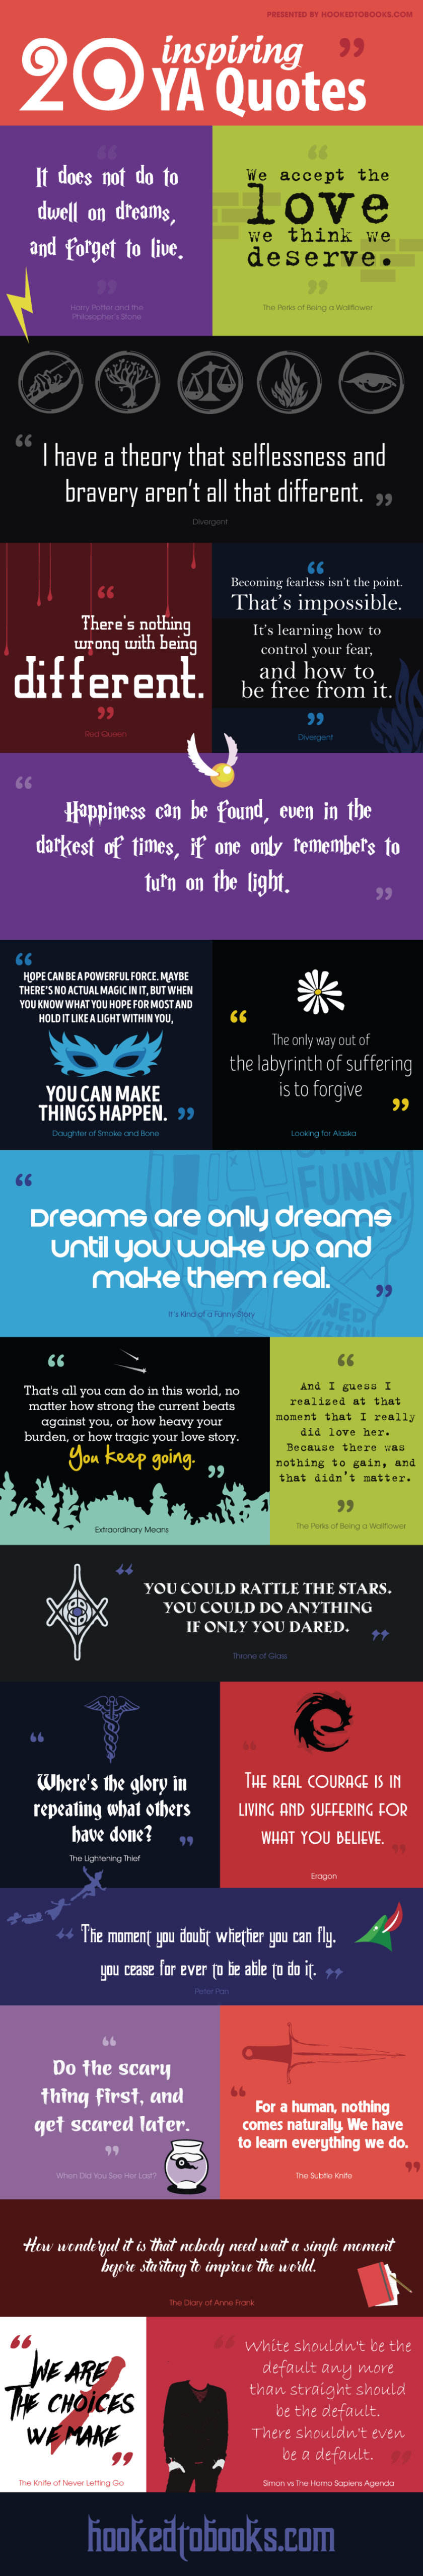 Inspiring quotes from young adult books #infographic